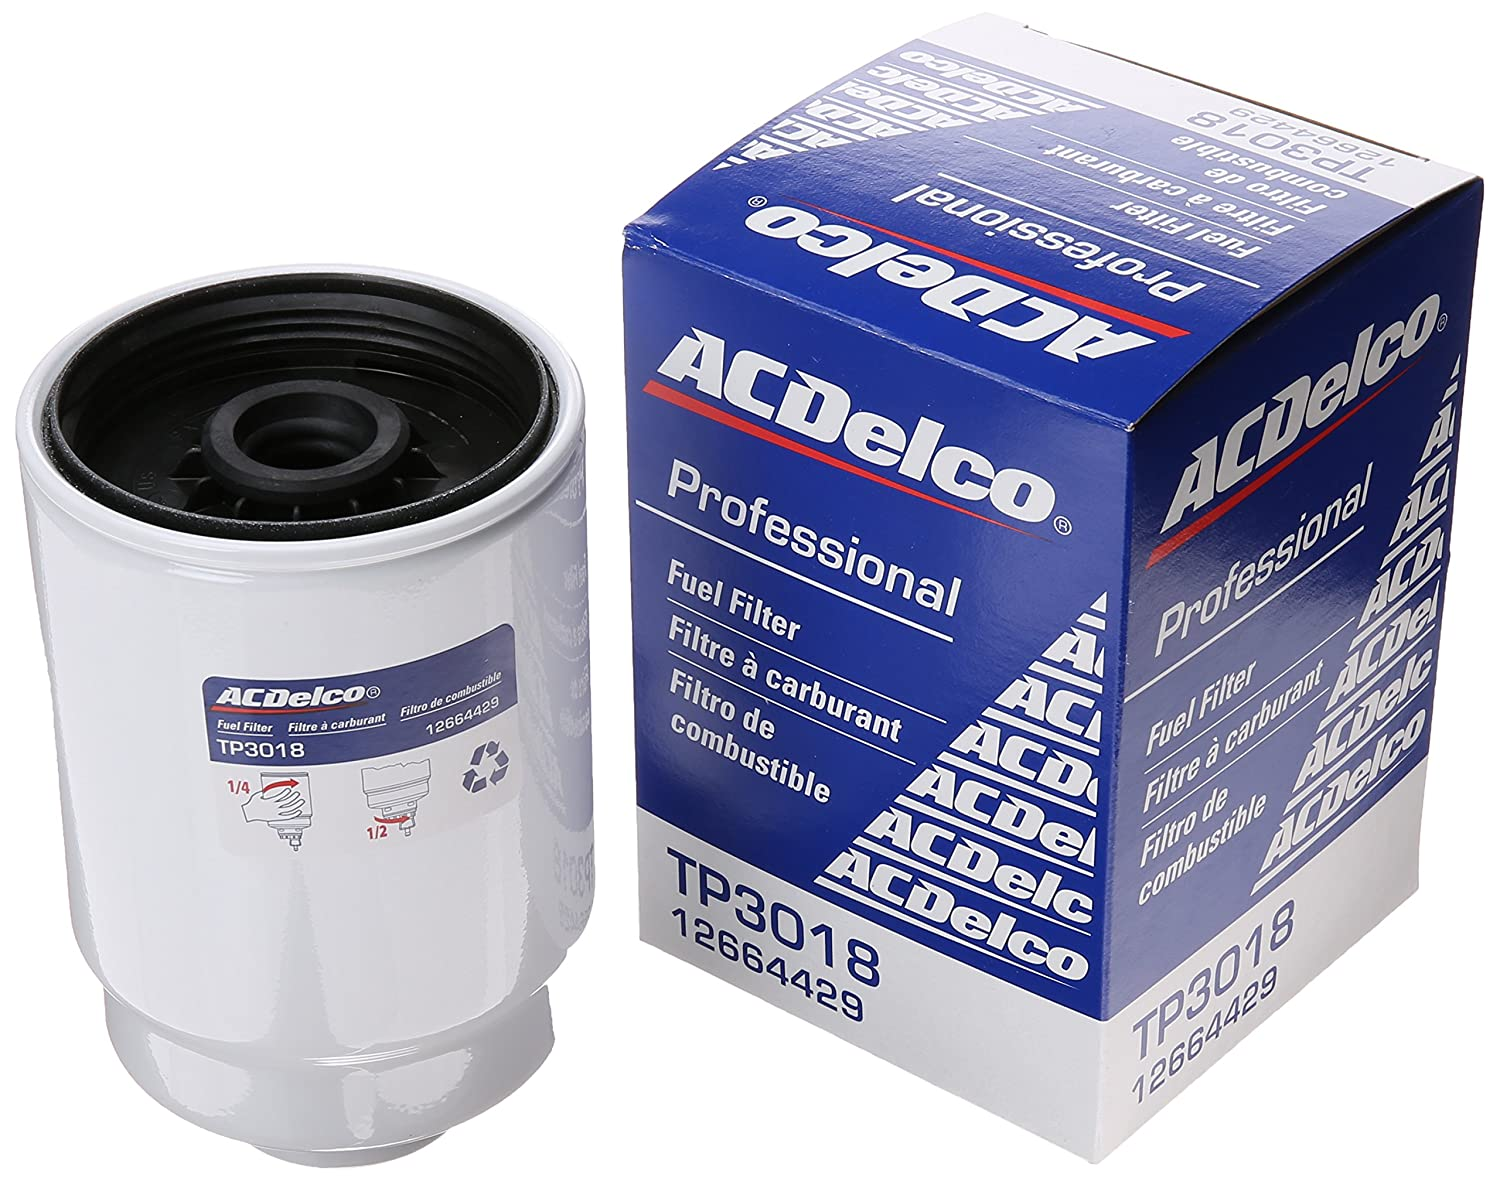 Fuel Filters Replacement Parts Automotive 2004 Mazda Filter Location Acdelco Tp3018 Professional With Seals